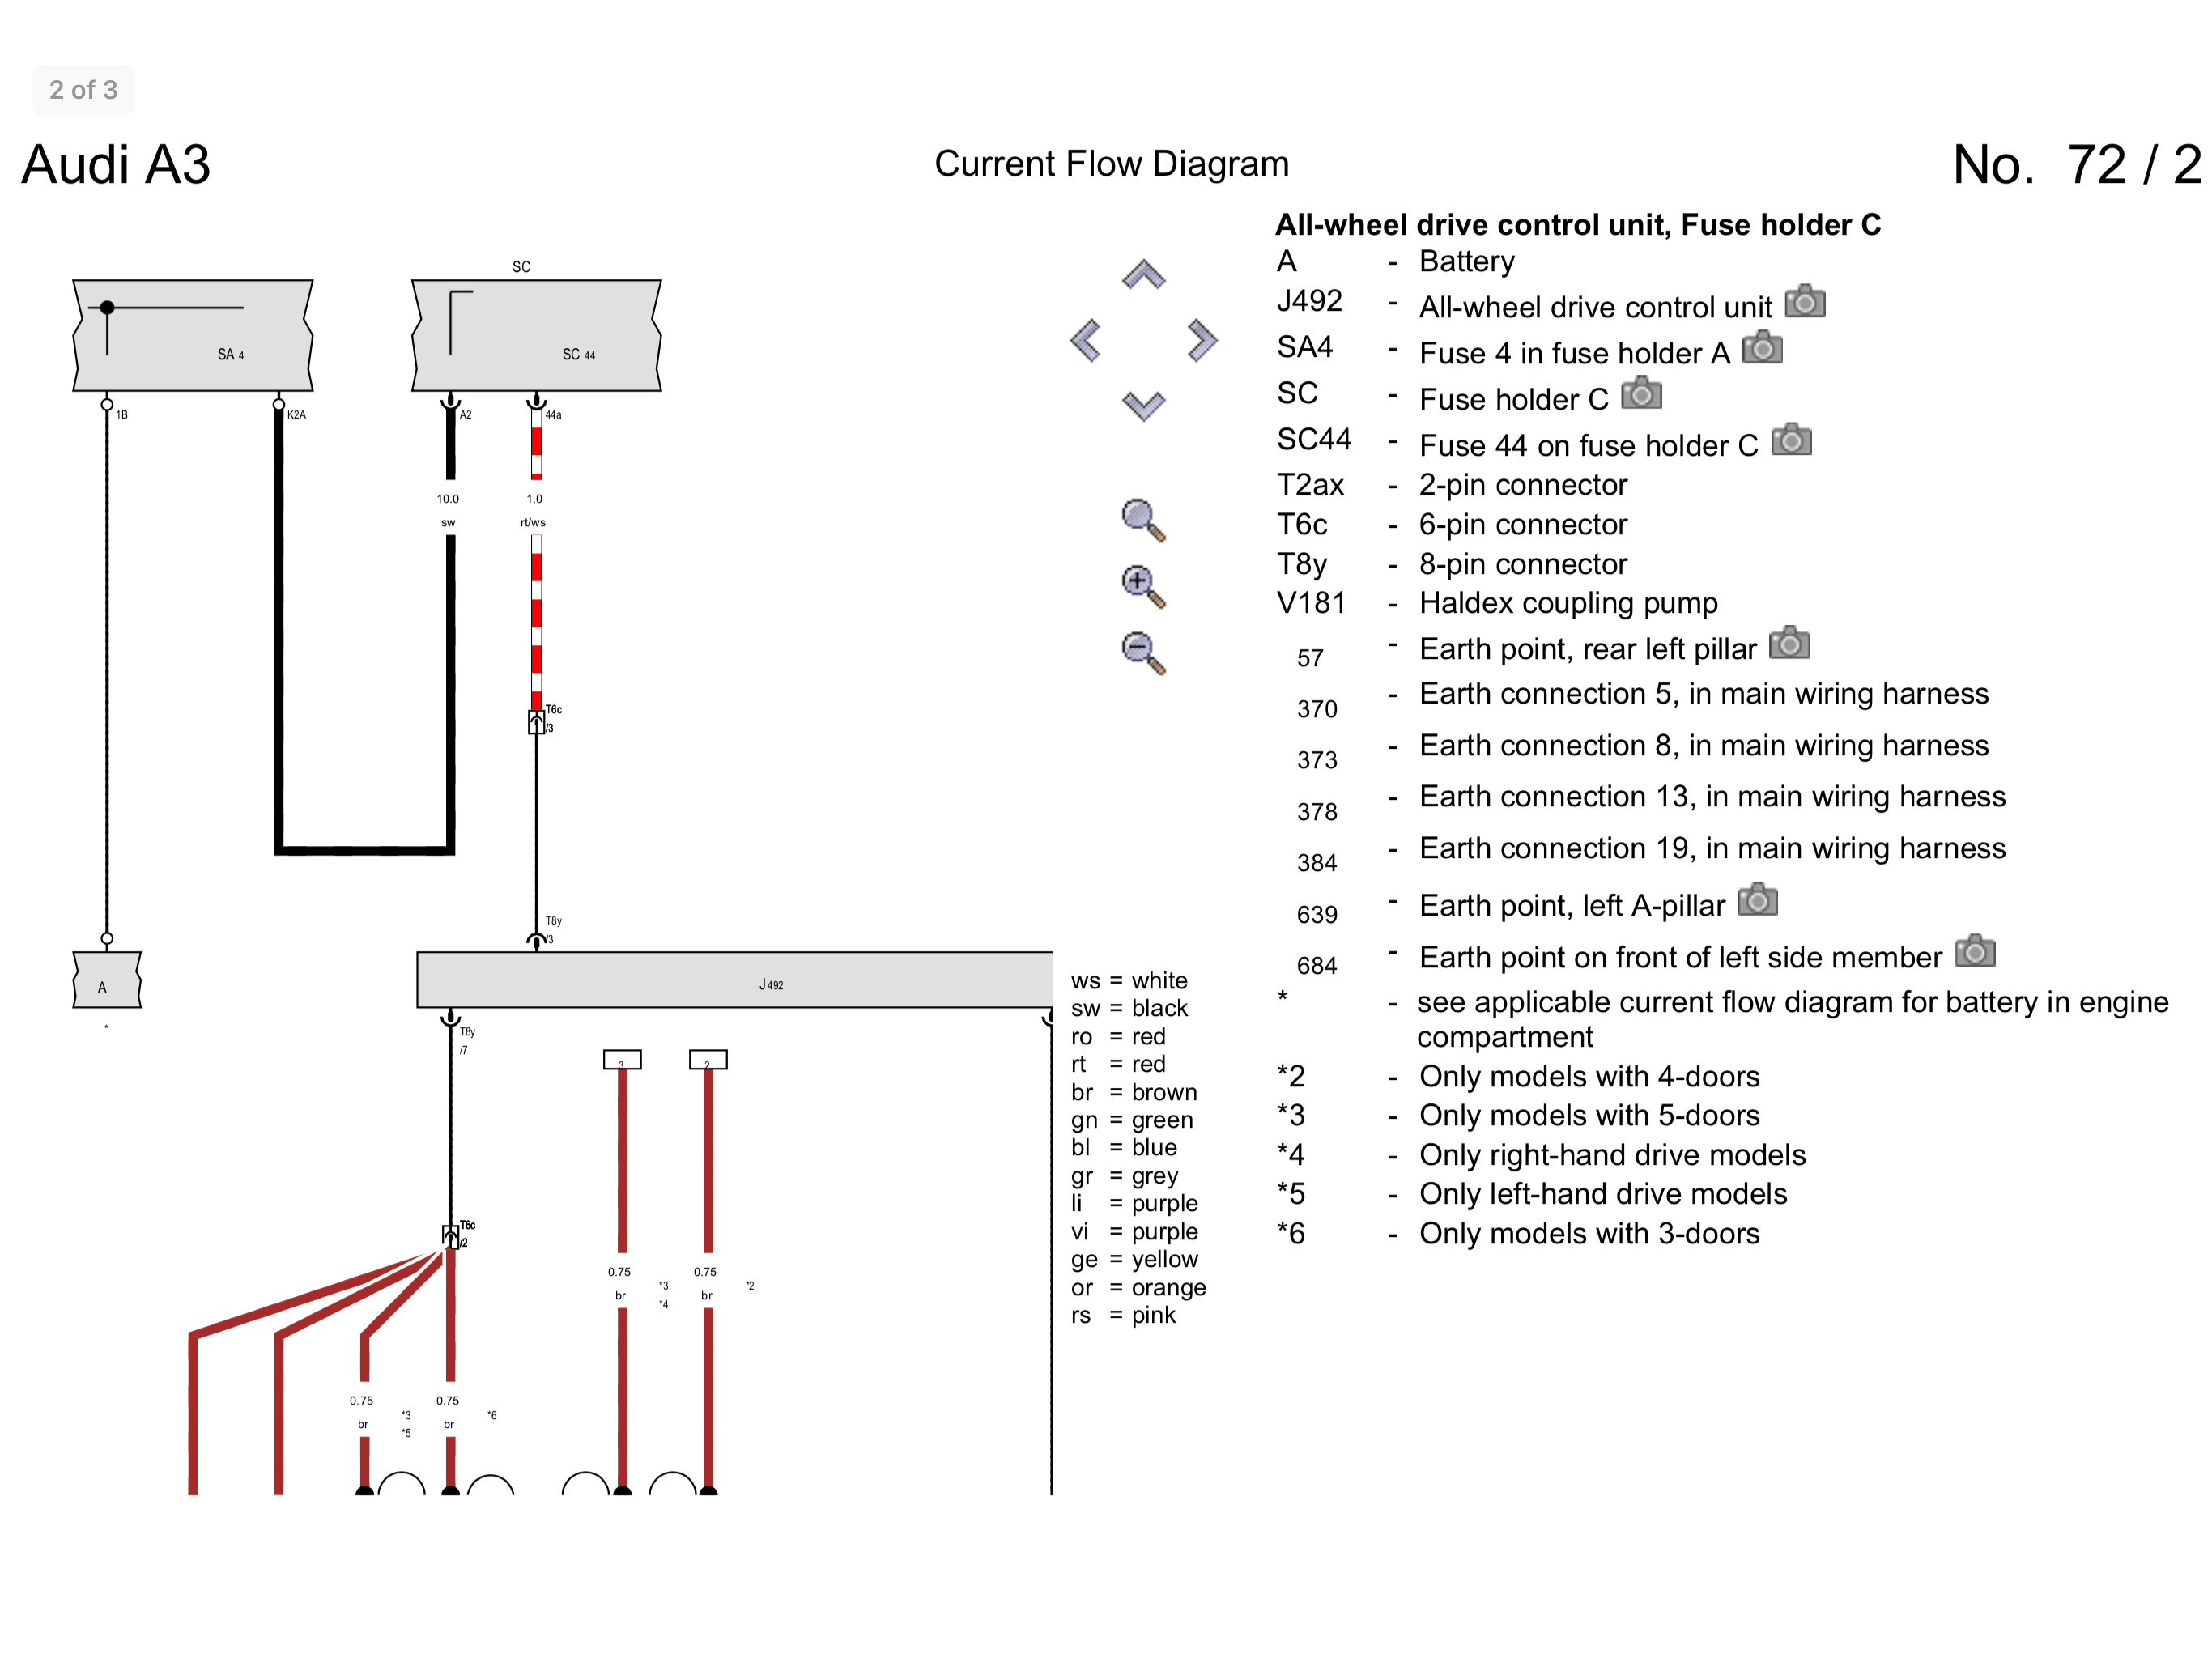 Haldex Gen 3 Piping Diagram - 24h schemes on